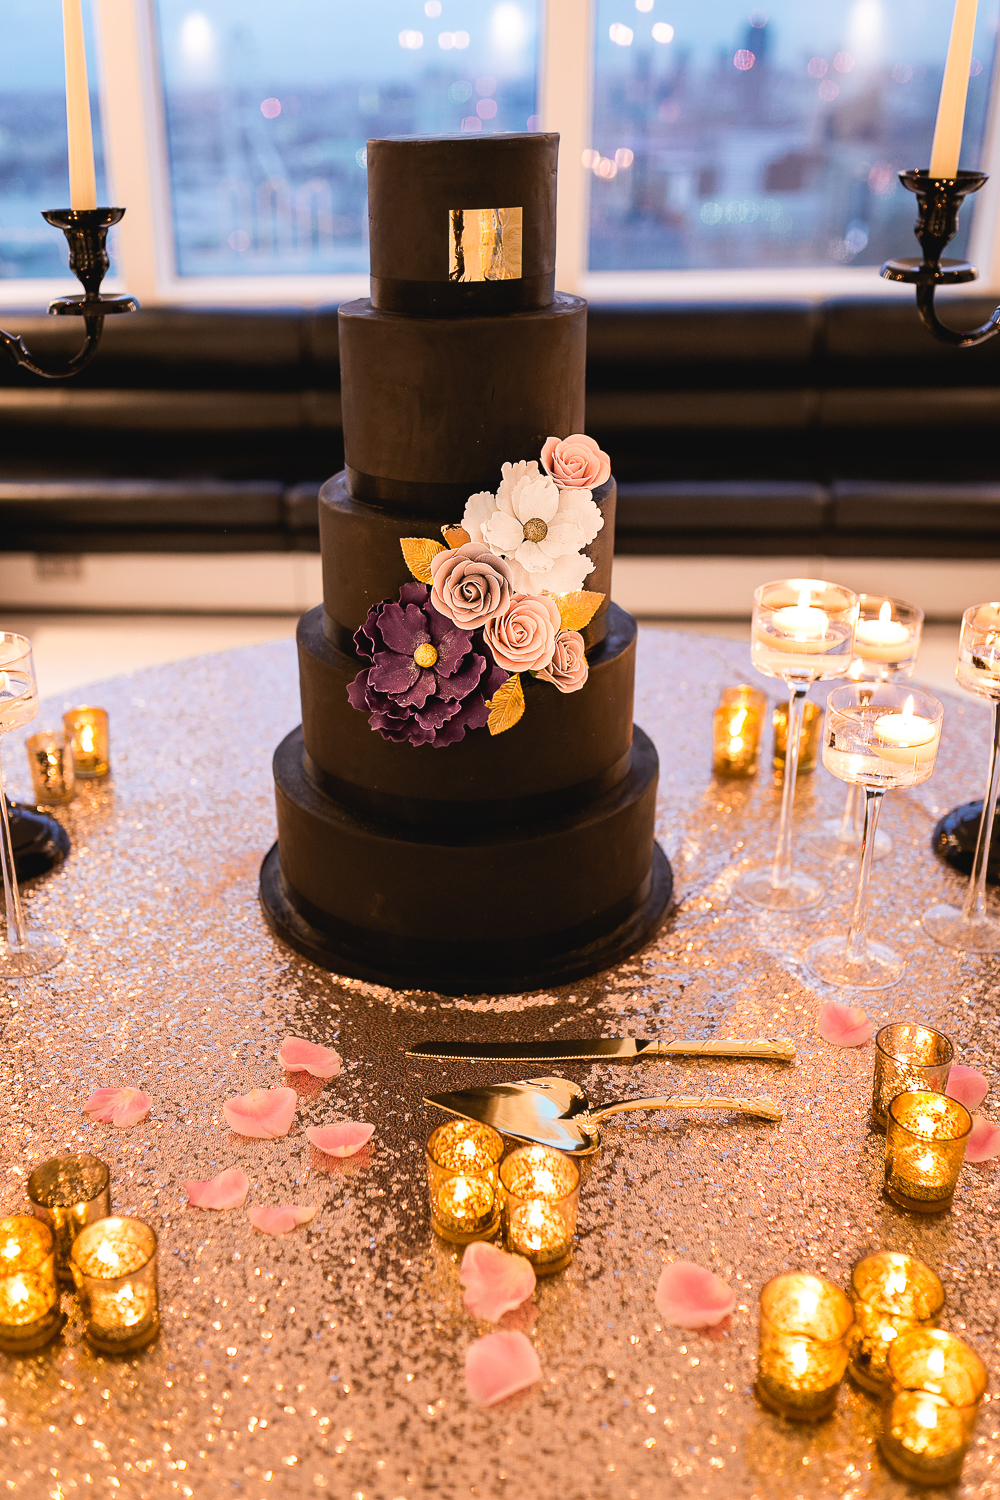 Wedding Photography at Altitude 360 London - Beatrici Photography-83